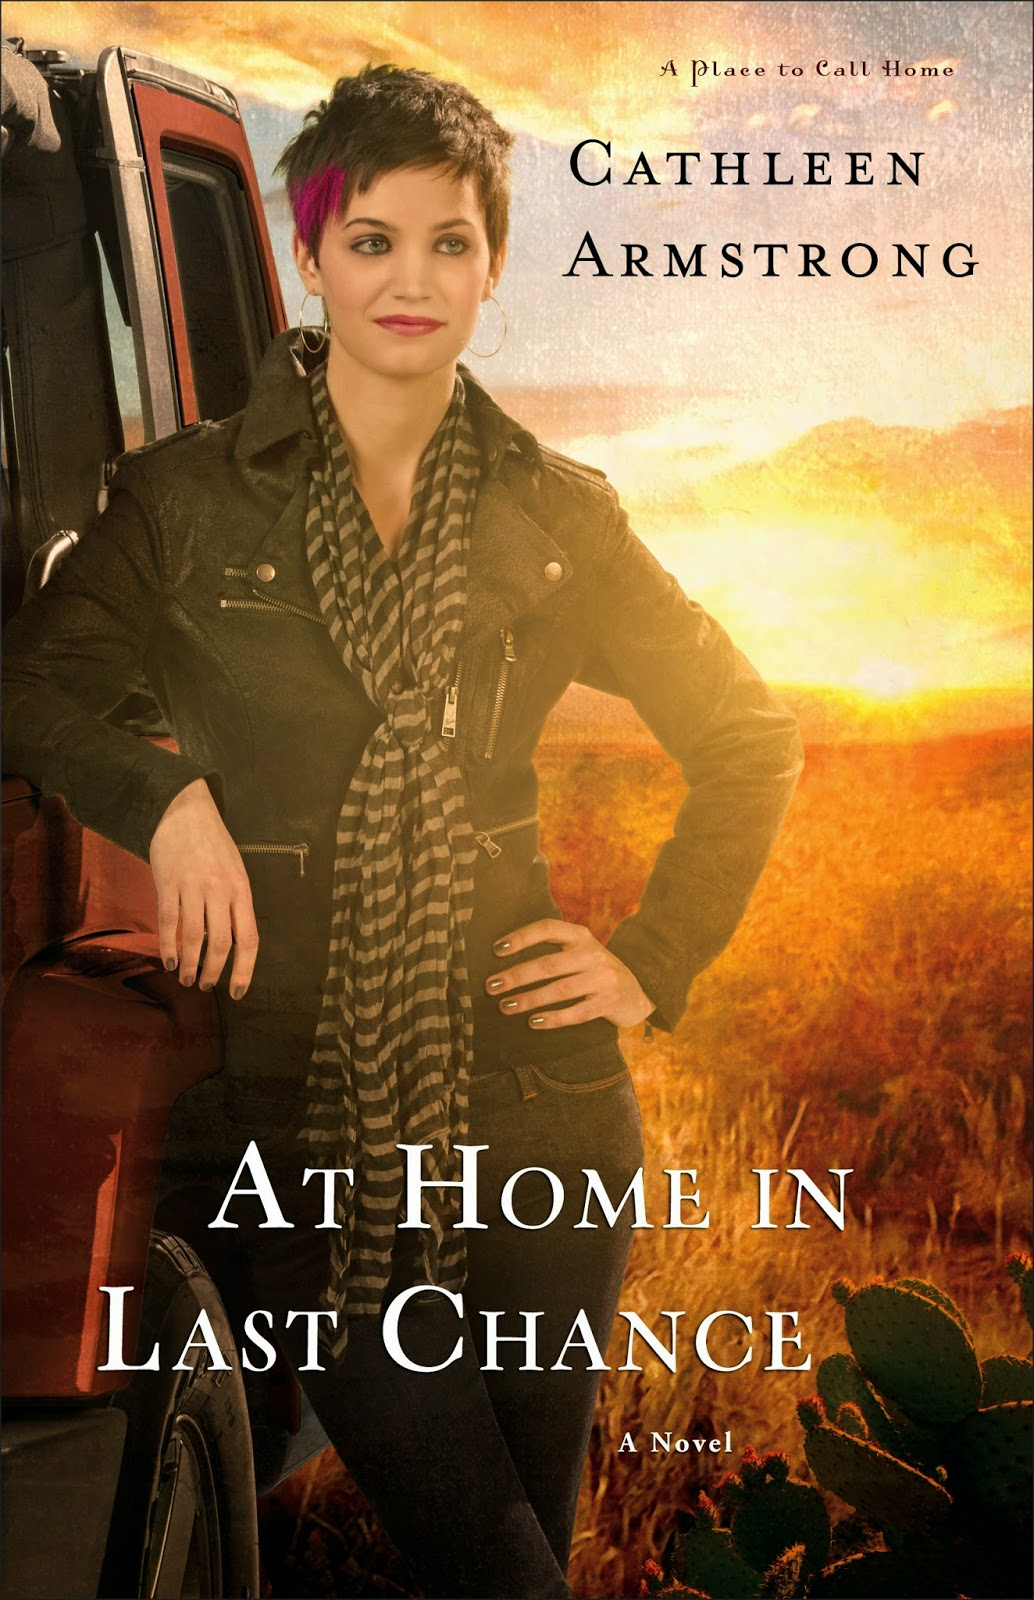 At Home In Last Chance (A Place to Call Home, Book 3) by Cathleen Armstrong